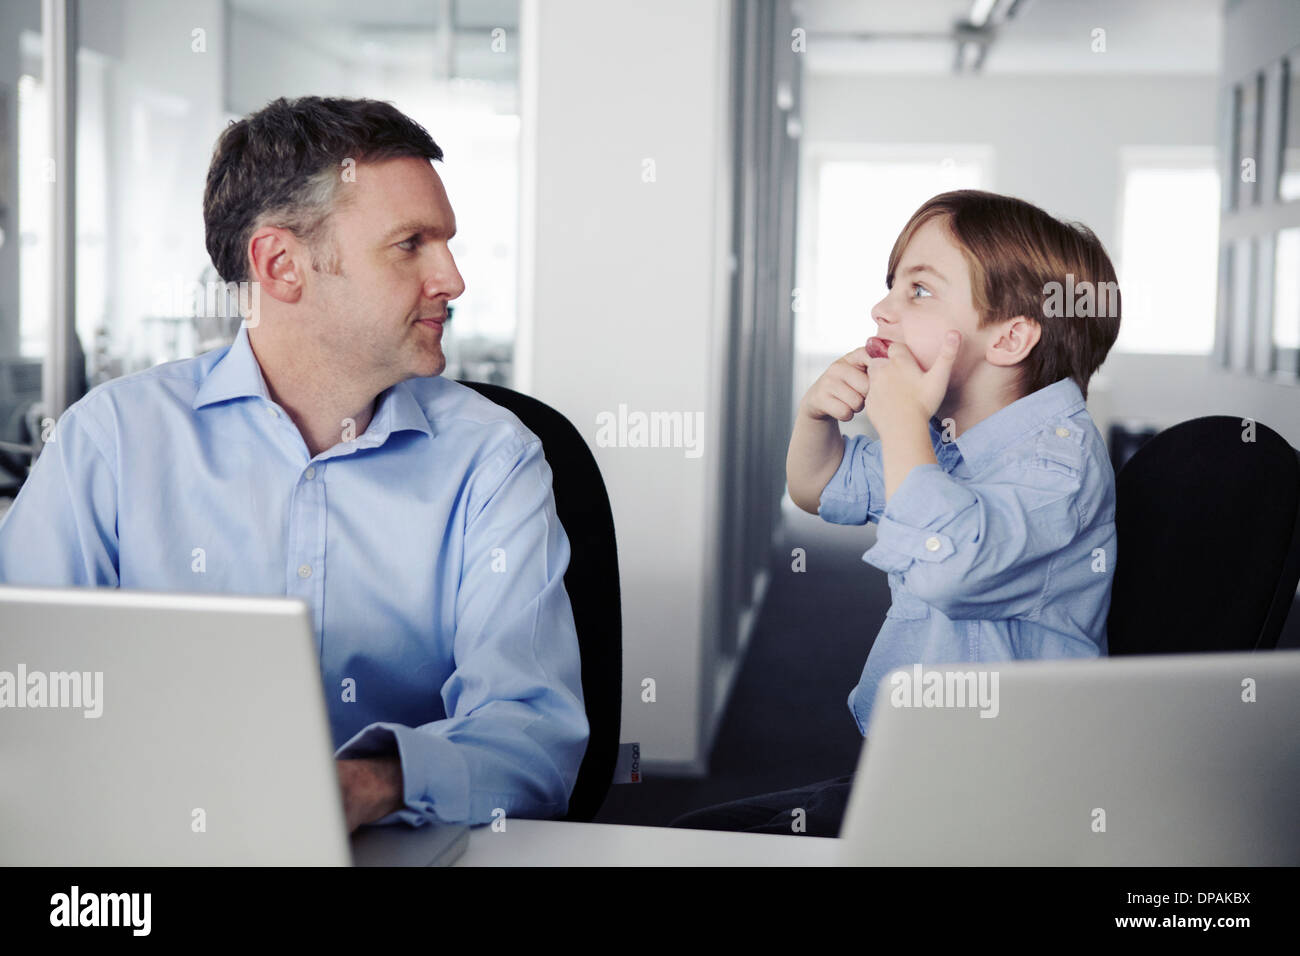 Father using laptop, son pulling faces - Stock Image